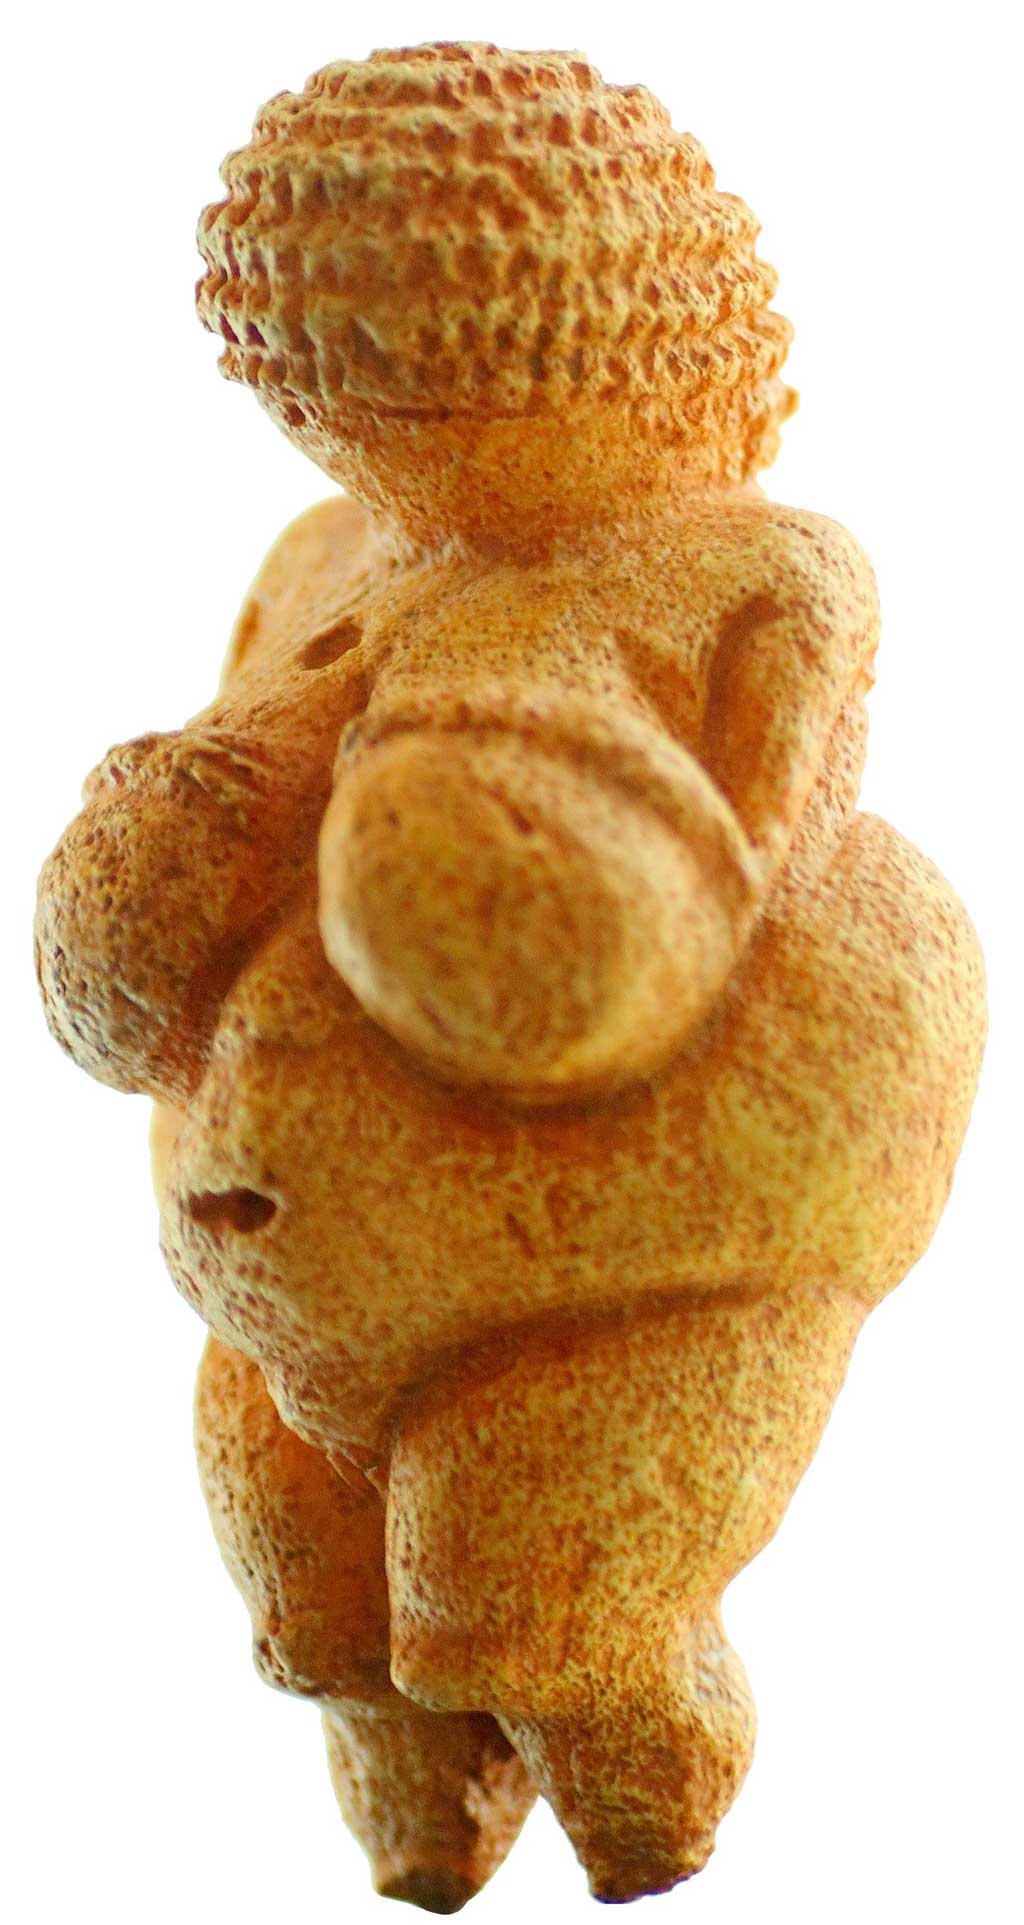 Image of the Venus of Willendorf. The ochre stained statuette included an accentuated bust and pronounced belly to emphasize her heightened fertility. While she is faceless, the carver of the Venus has etched woven hair into the statue.